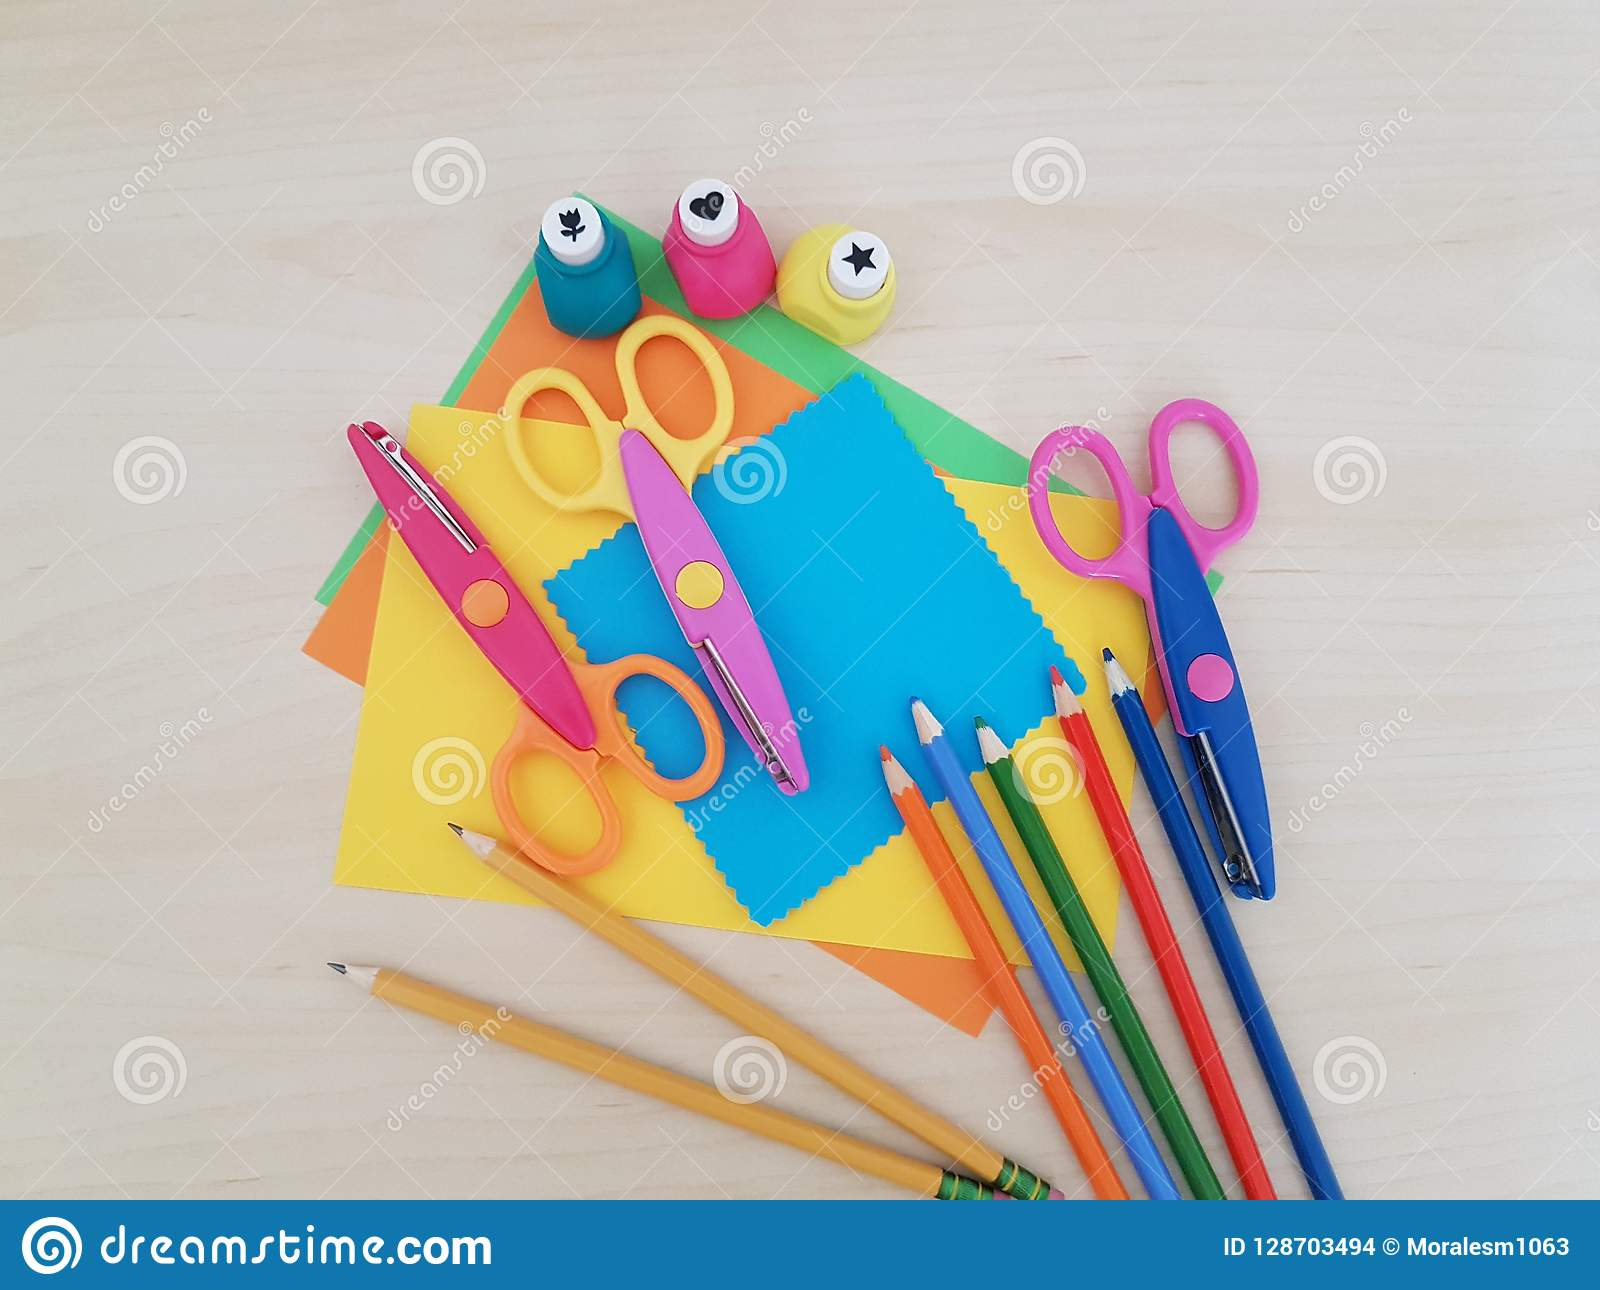 Arts And Crafts Supply Kids Crafts Back To School School Supplies